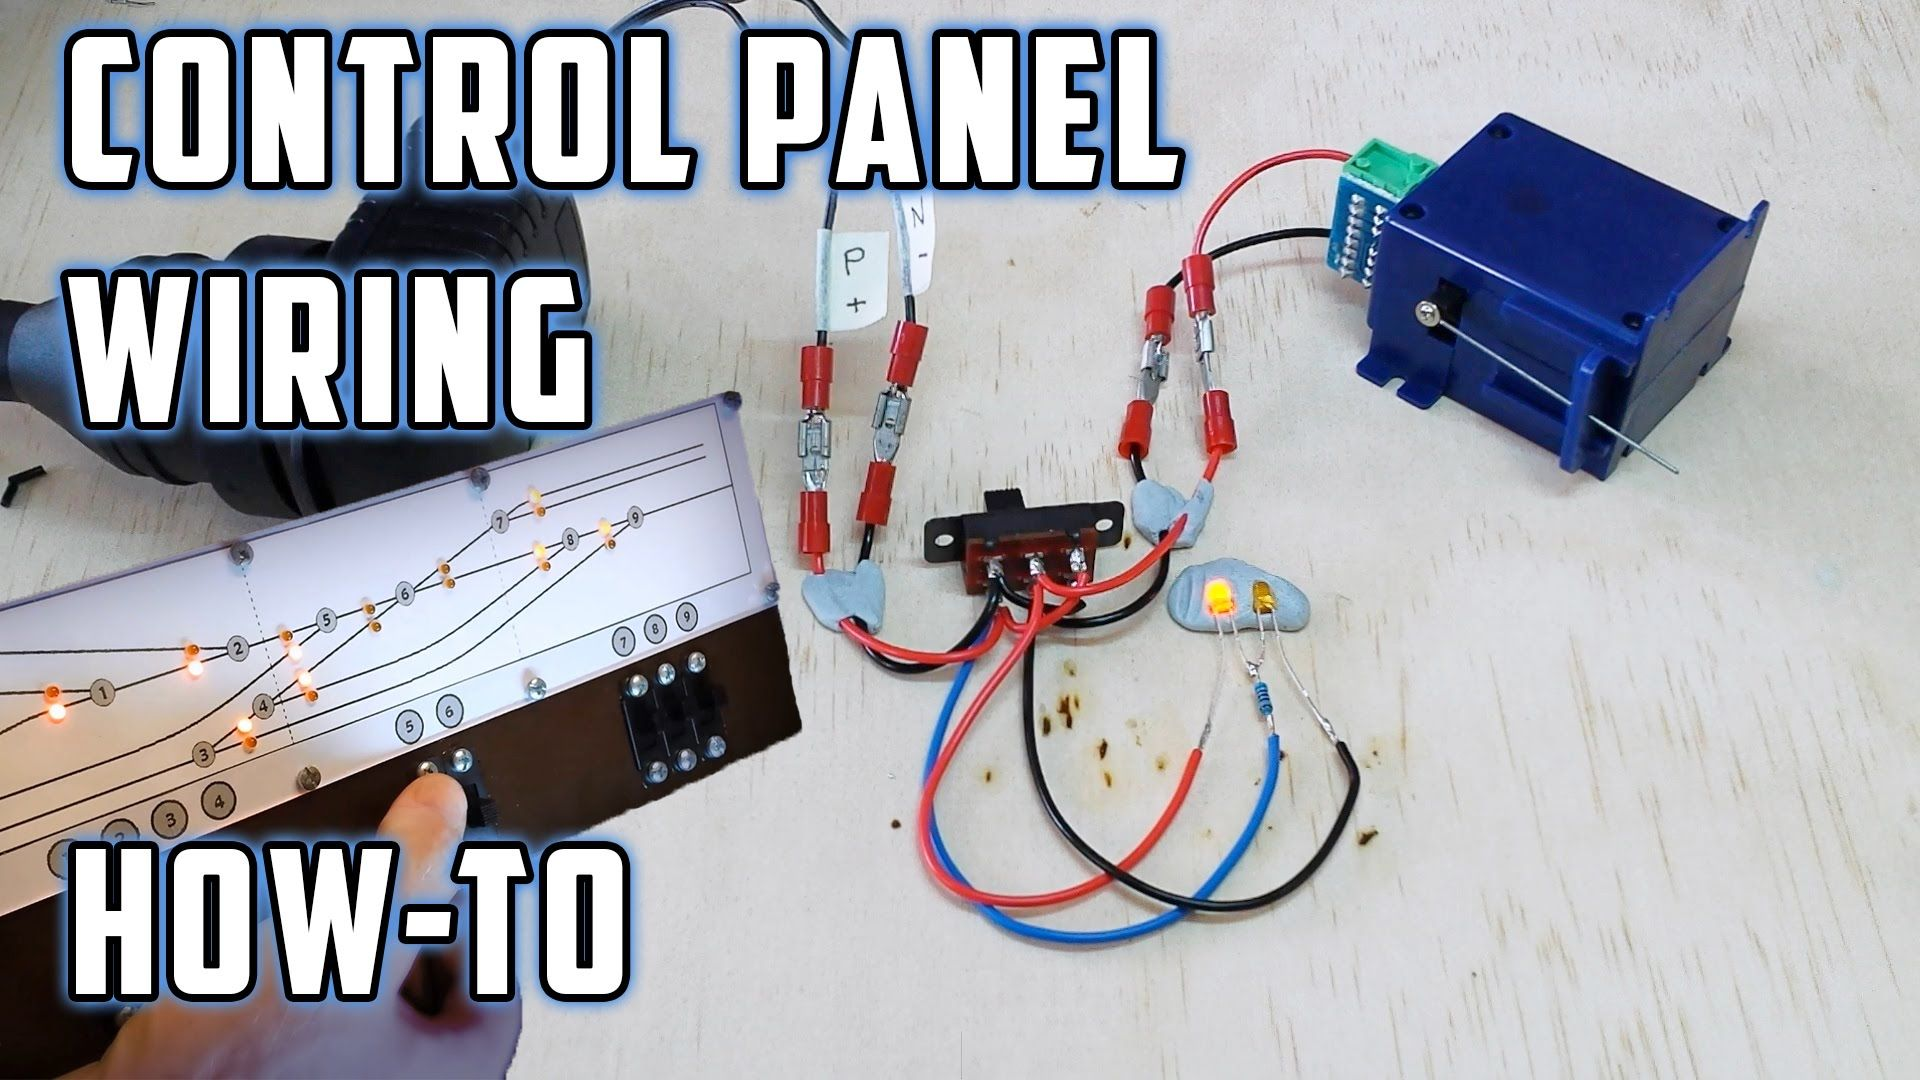 Control Panel Wiring (with LED's) - How To - Model Railroads N Scale Model